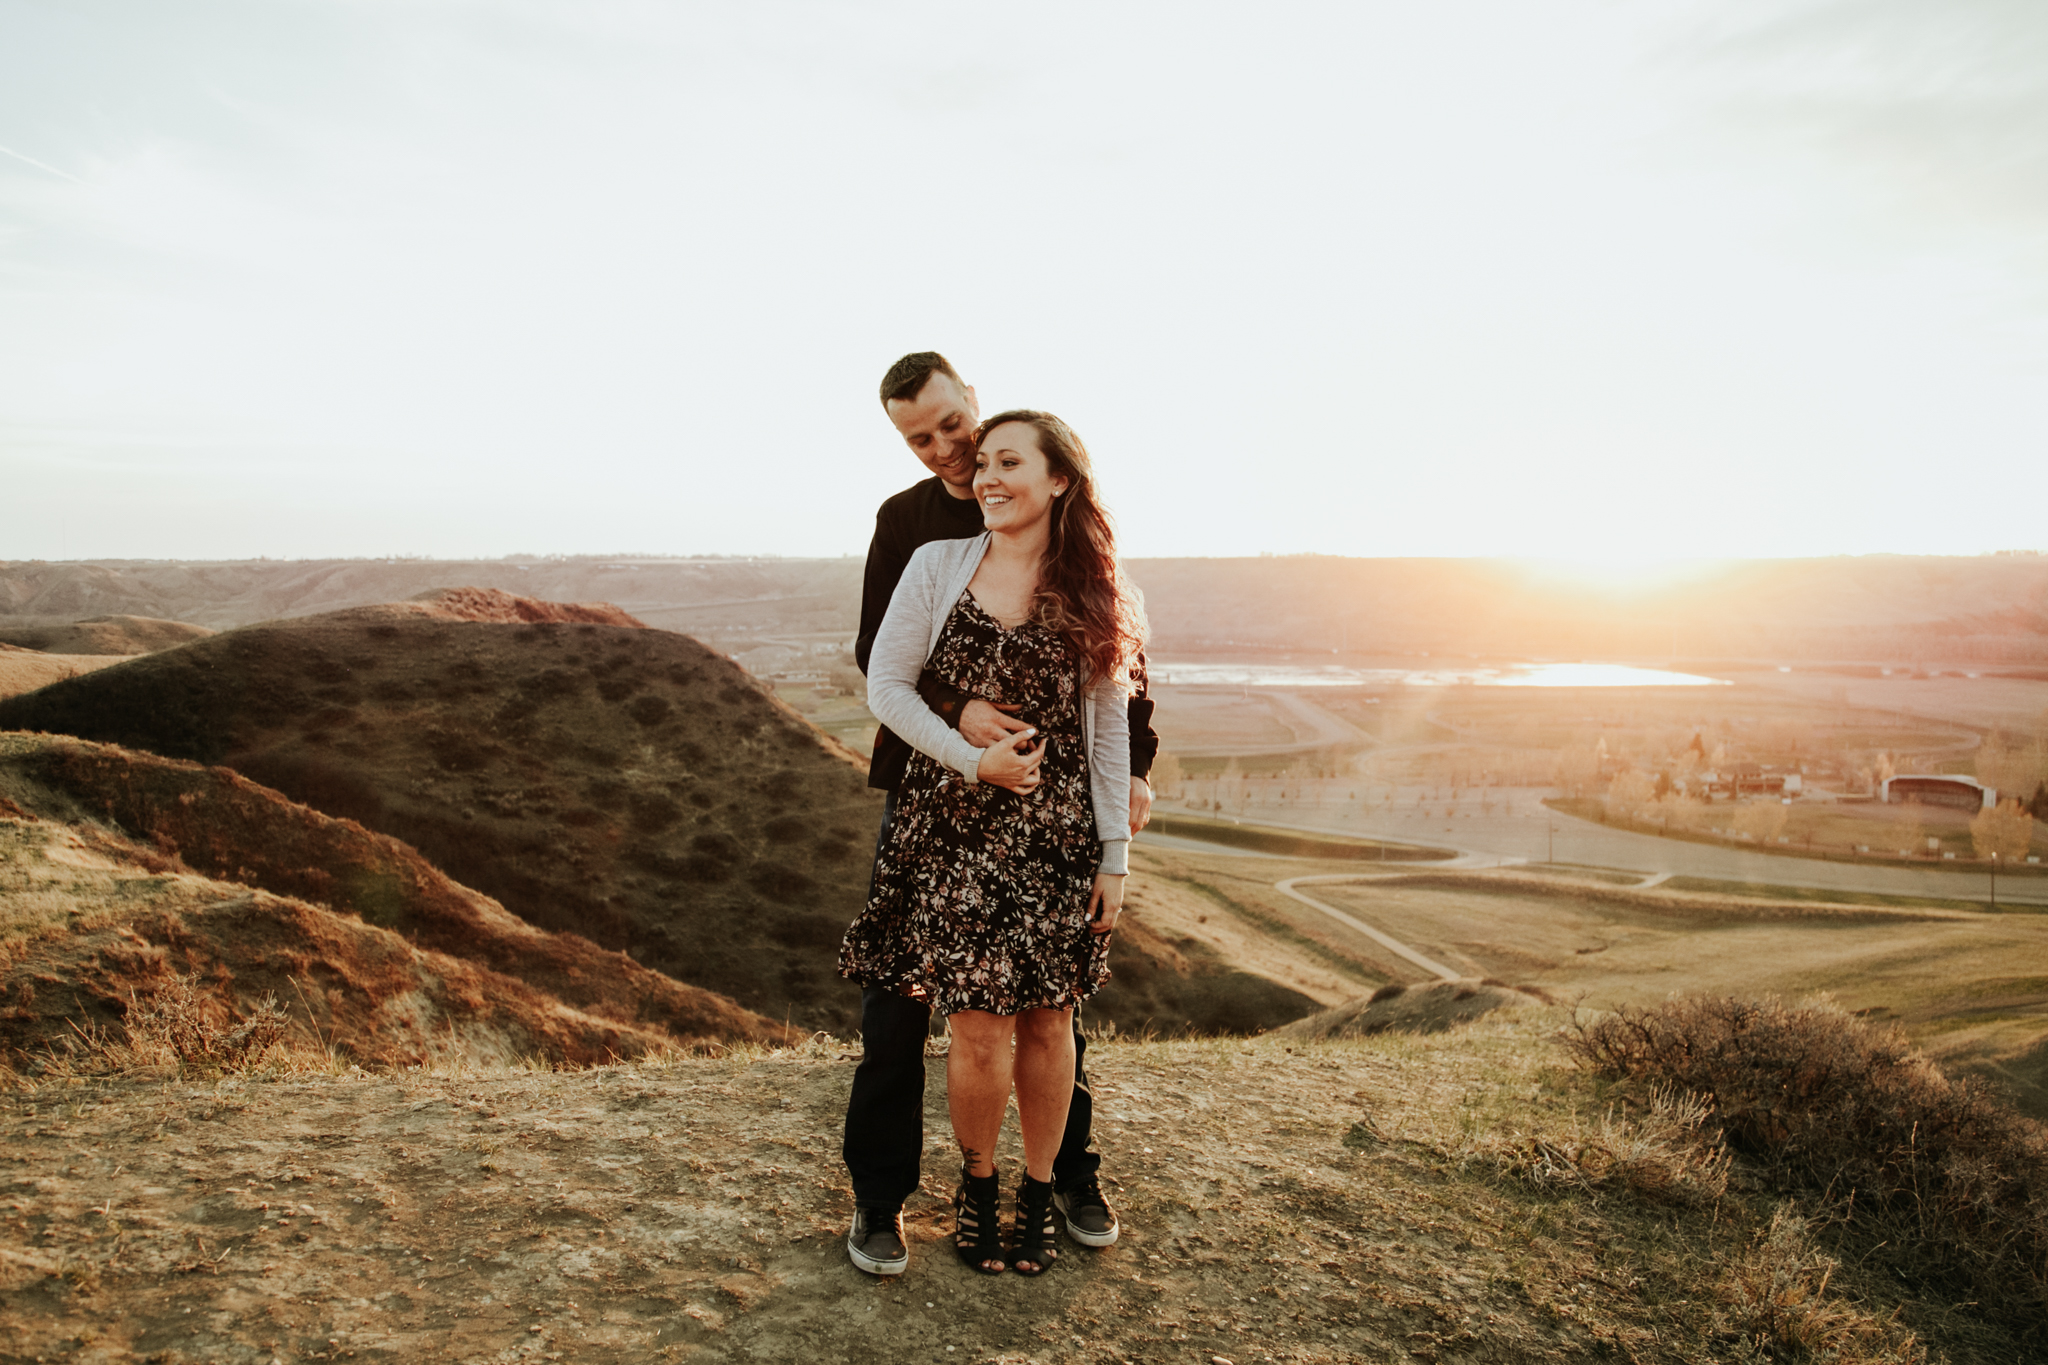 lethbridge-photographer-love-and-be-loved-photography-jessica-john-engagement-picture-image-photo-56.jpg